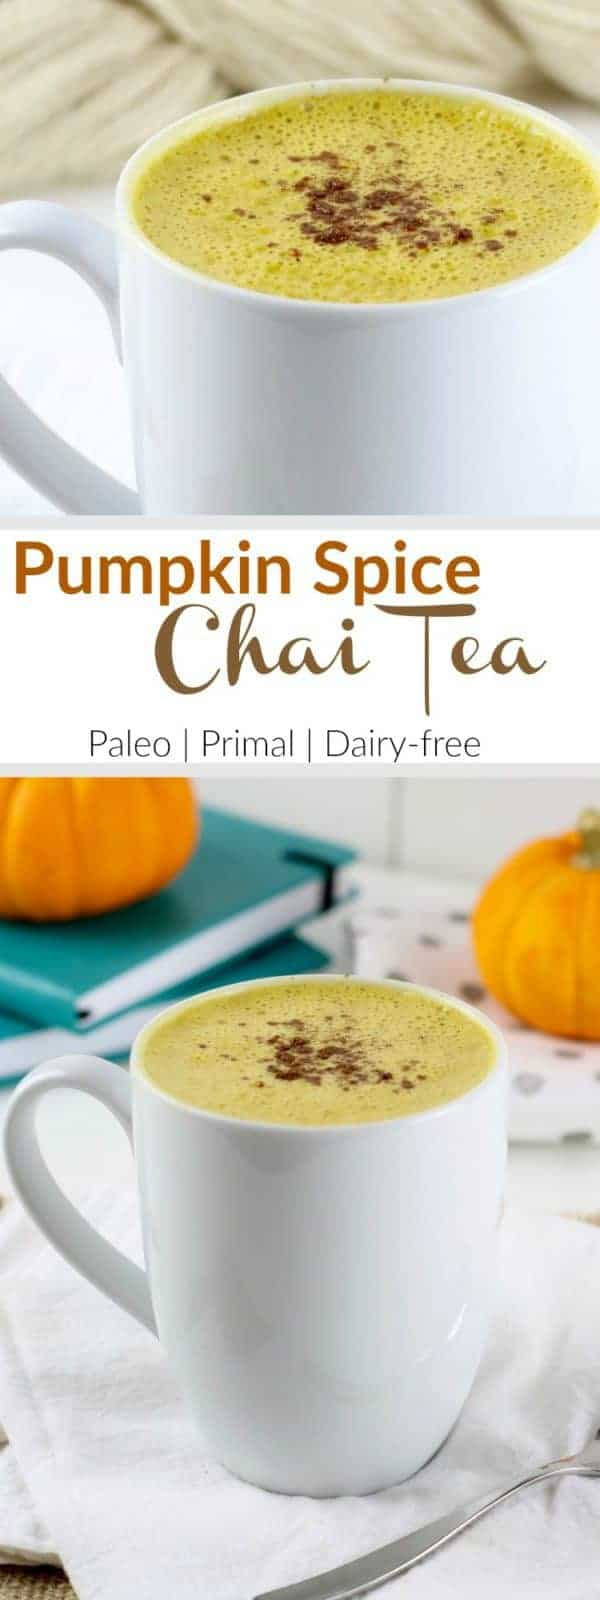 Pinterest image for Pumpkin Spice Chai Tea